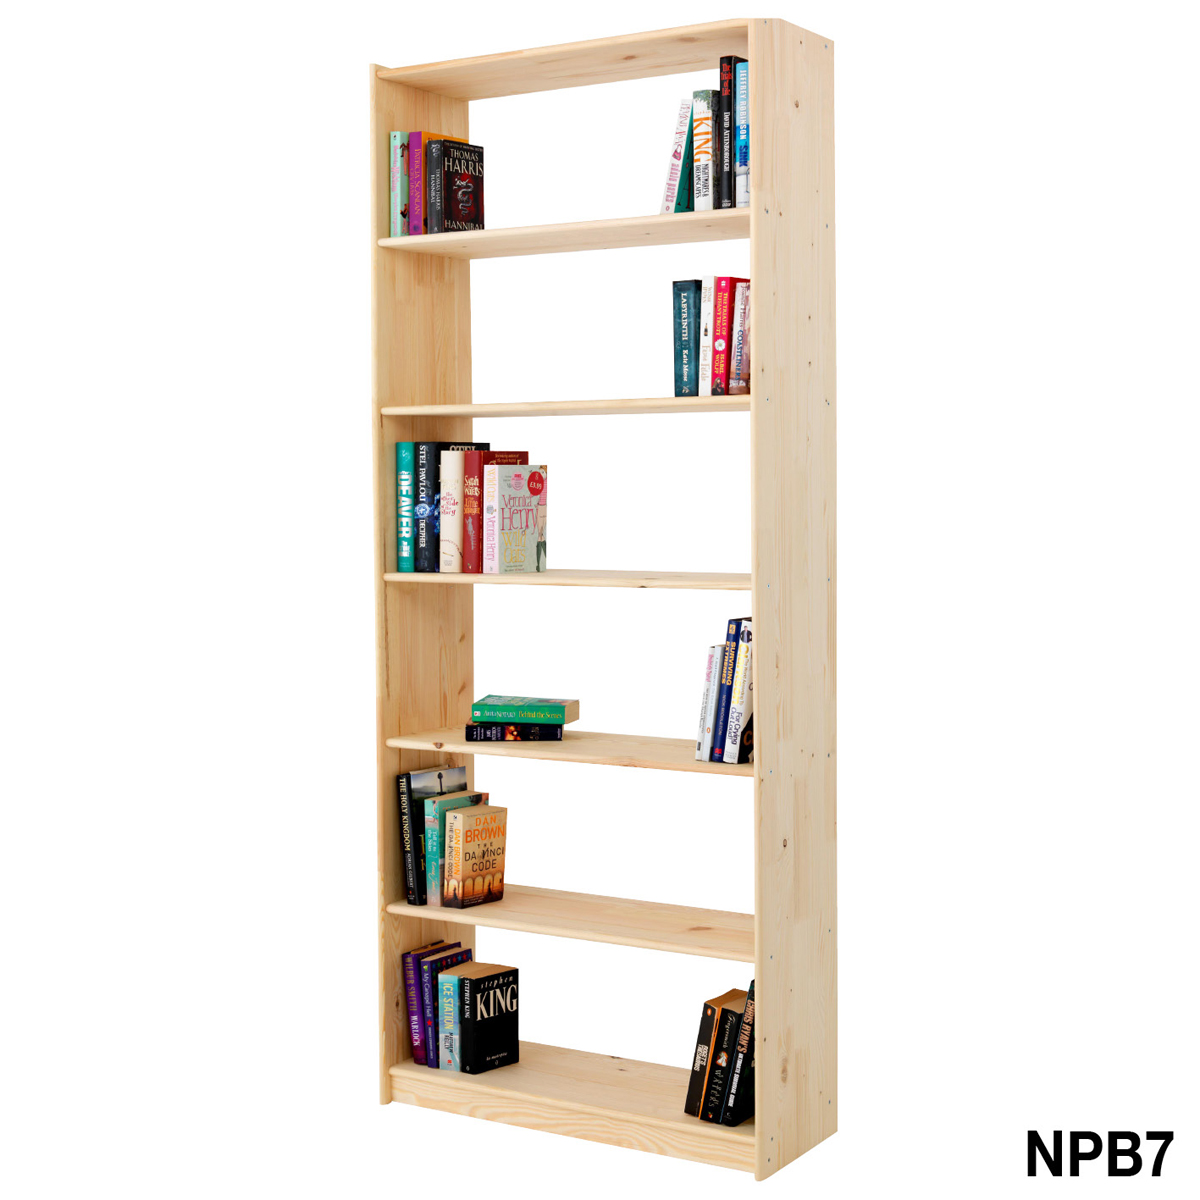 Superb img of Natural Pine 7 Level Wooden Bookcase 1921hx800wx300d eBay with #783724 color and 1200x1200 pixels